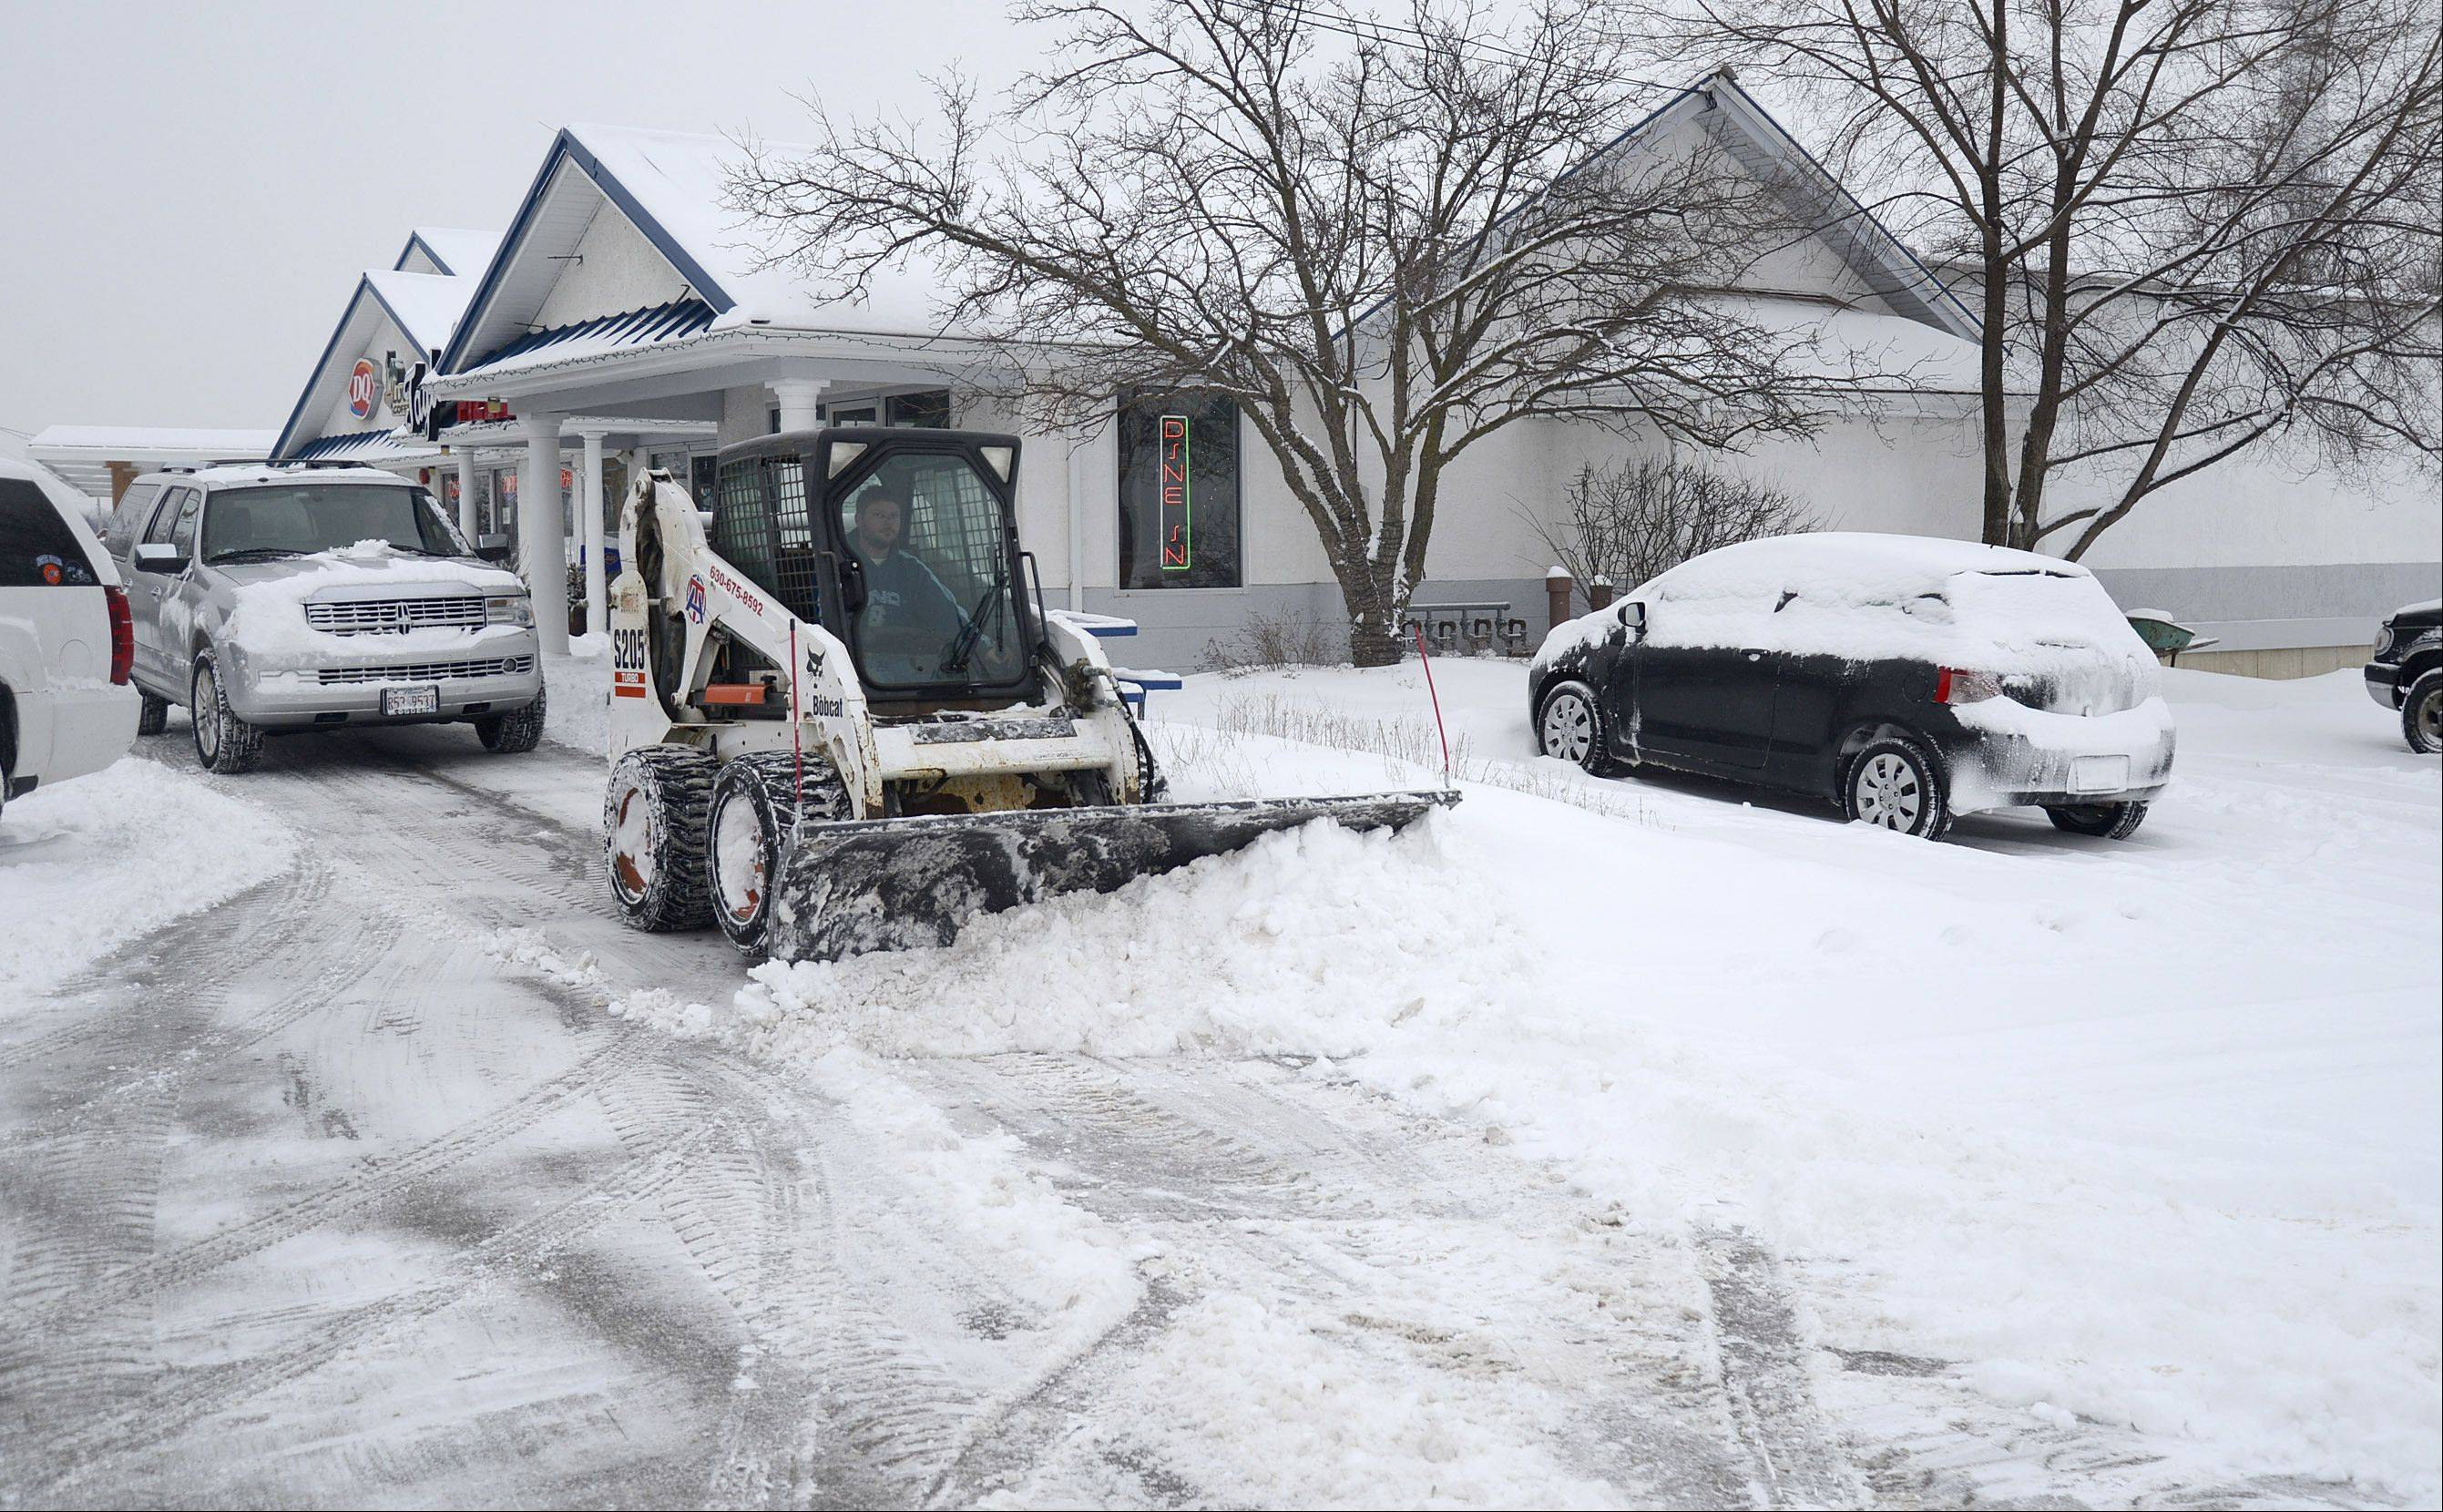 Travis Crabtree with T and A Contractors out of Maple Park clears snow from the parking lot of a business strip building in Wasco on Saturday morning. This was one of 10 properties he was in charge of plowing.